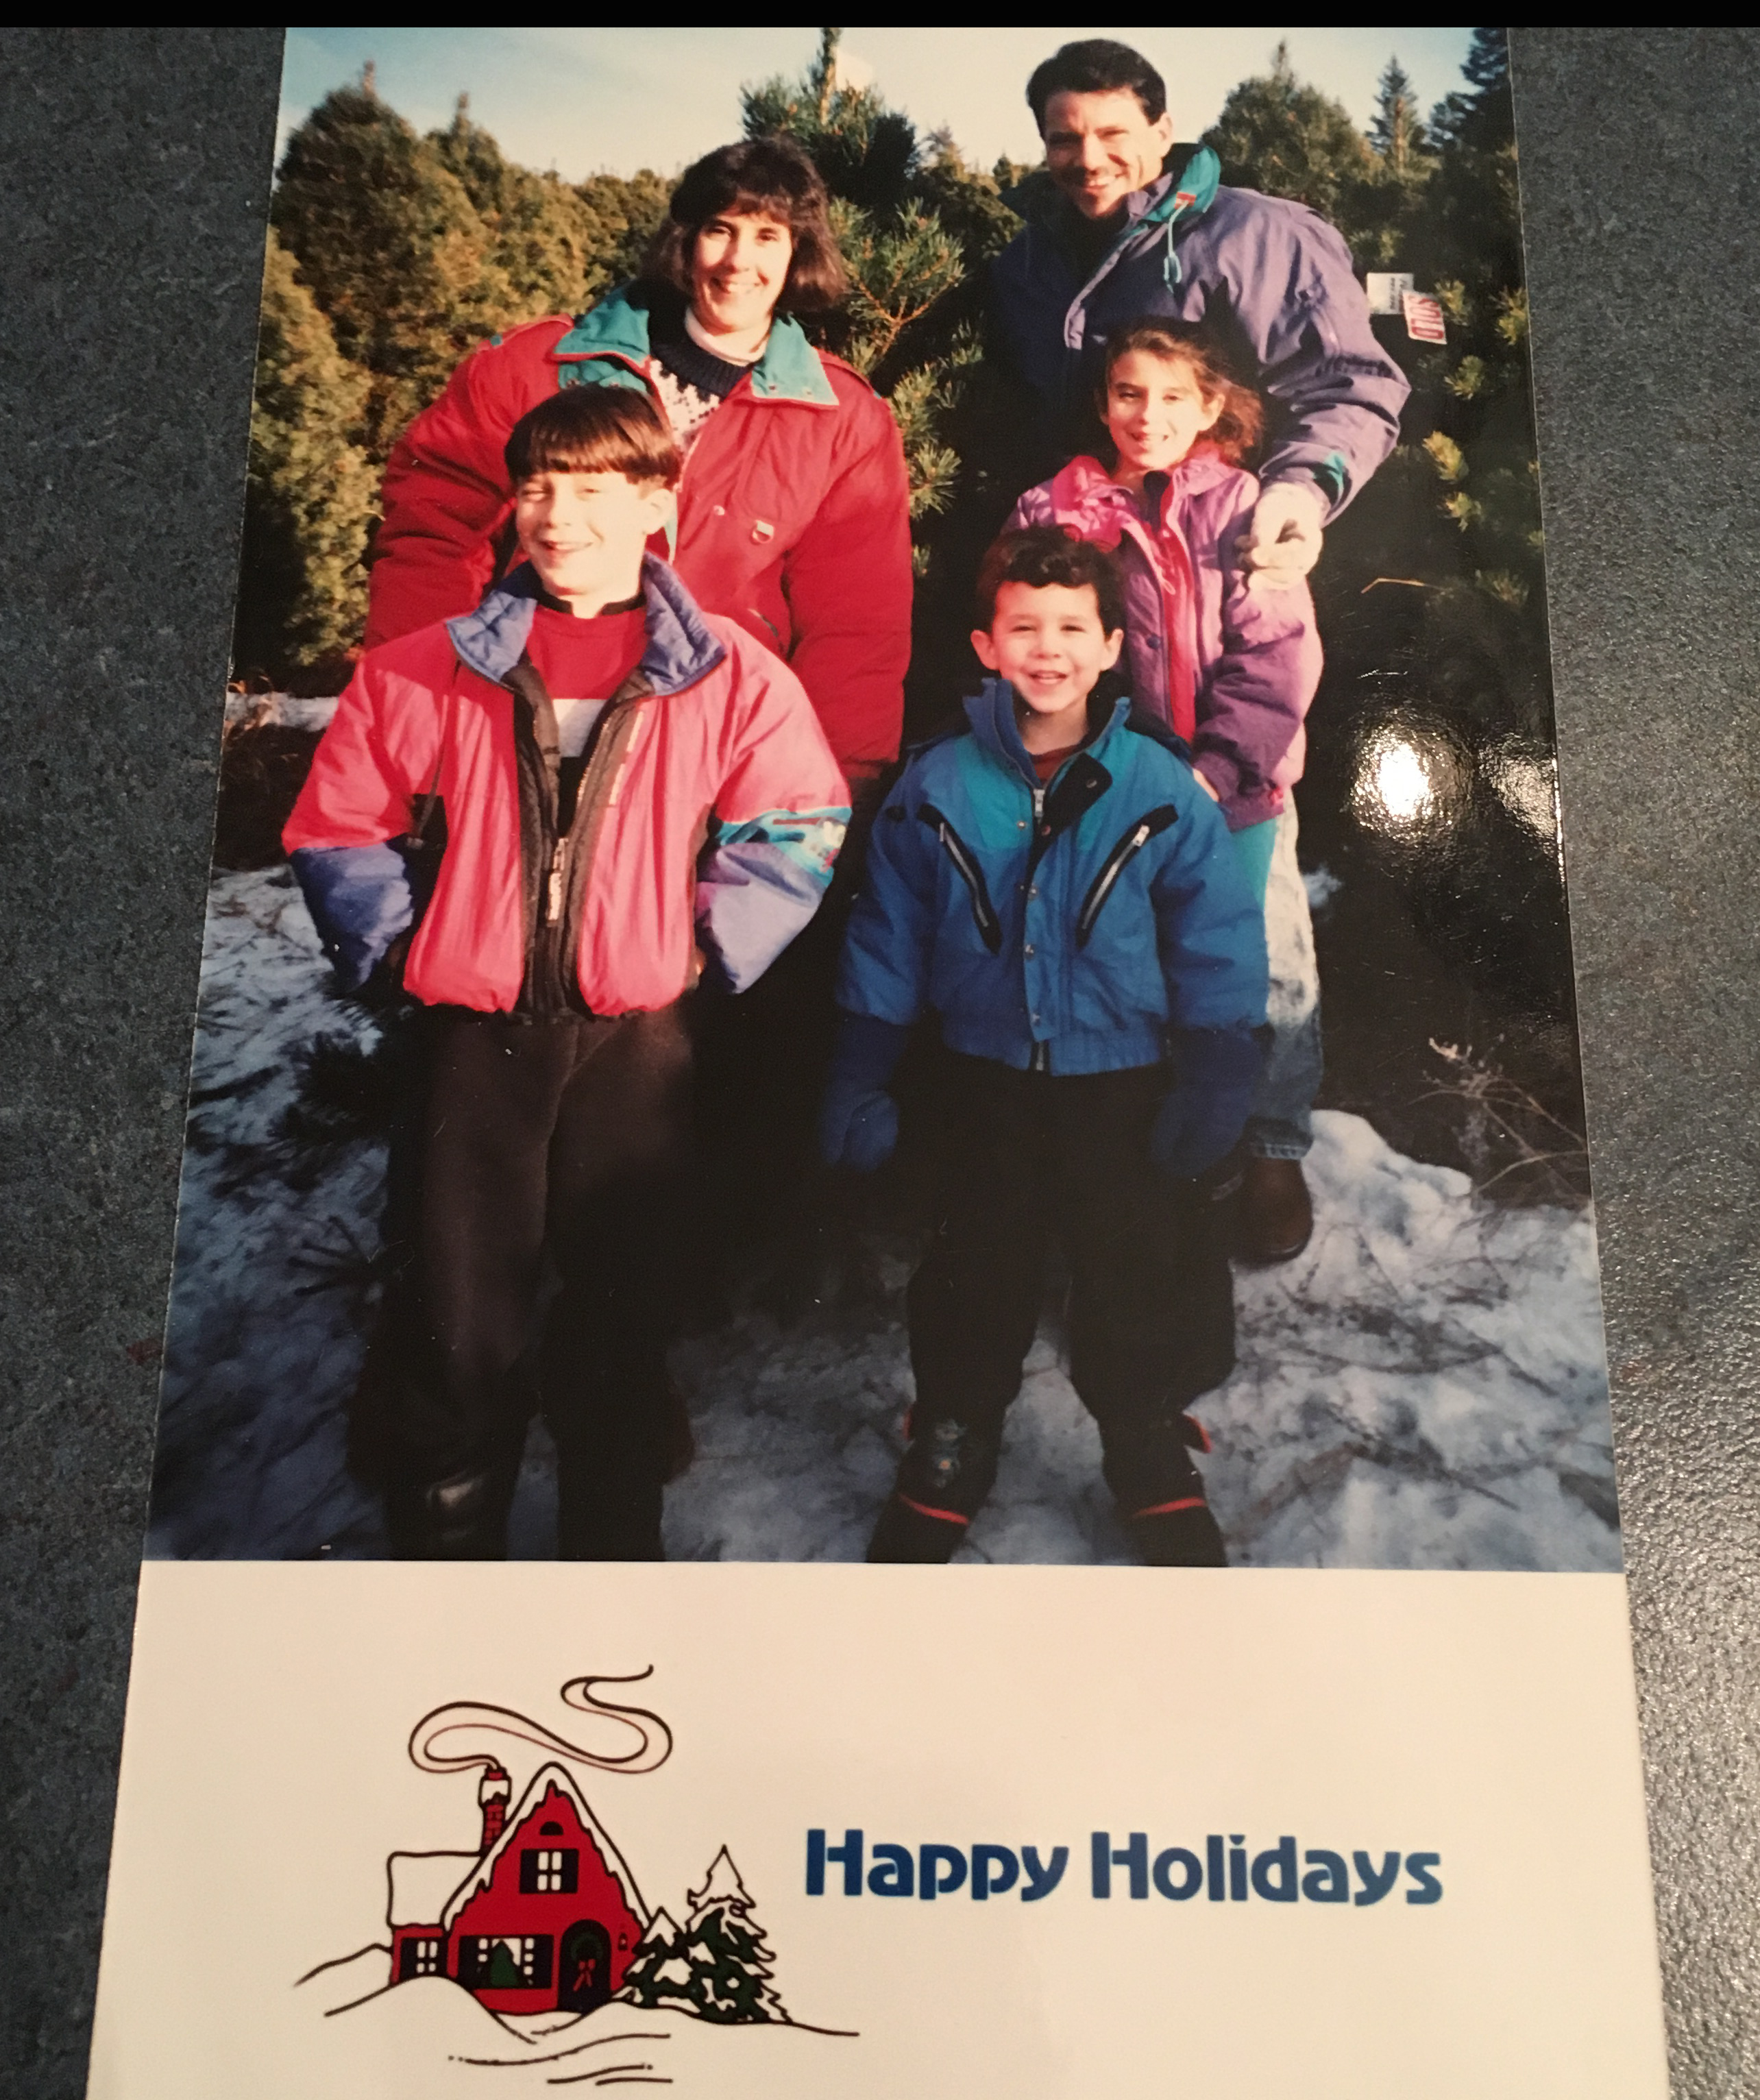 This is my all-time favorite Christmas card my family sent out. This was us at the Christmas tree farm in 1995.